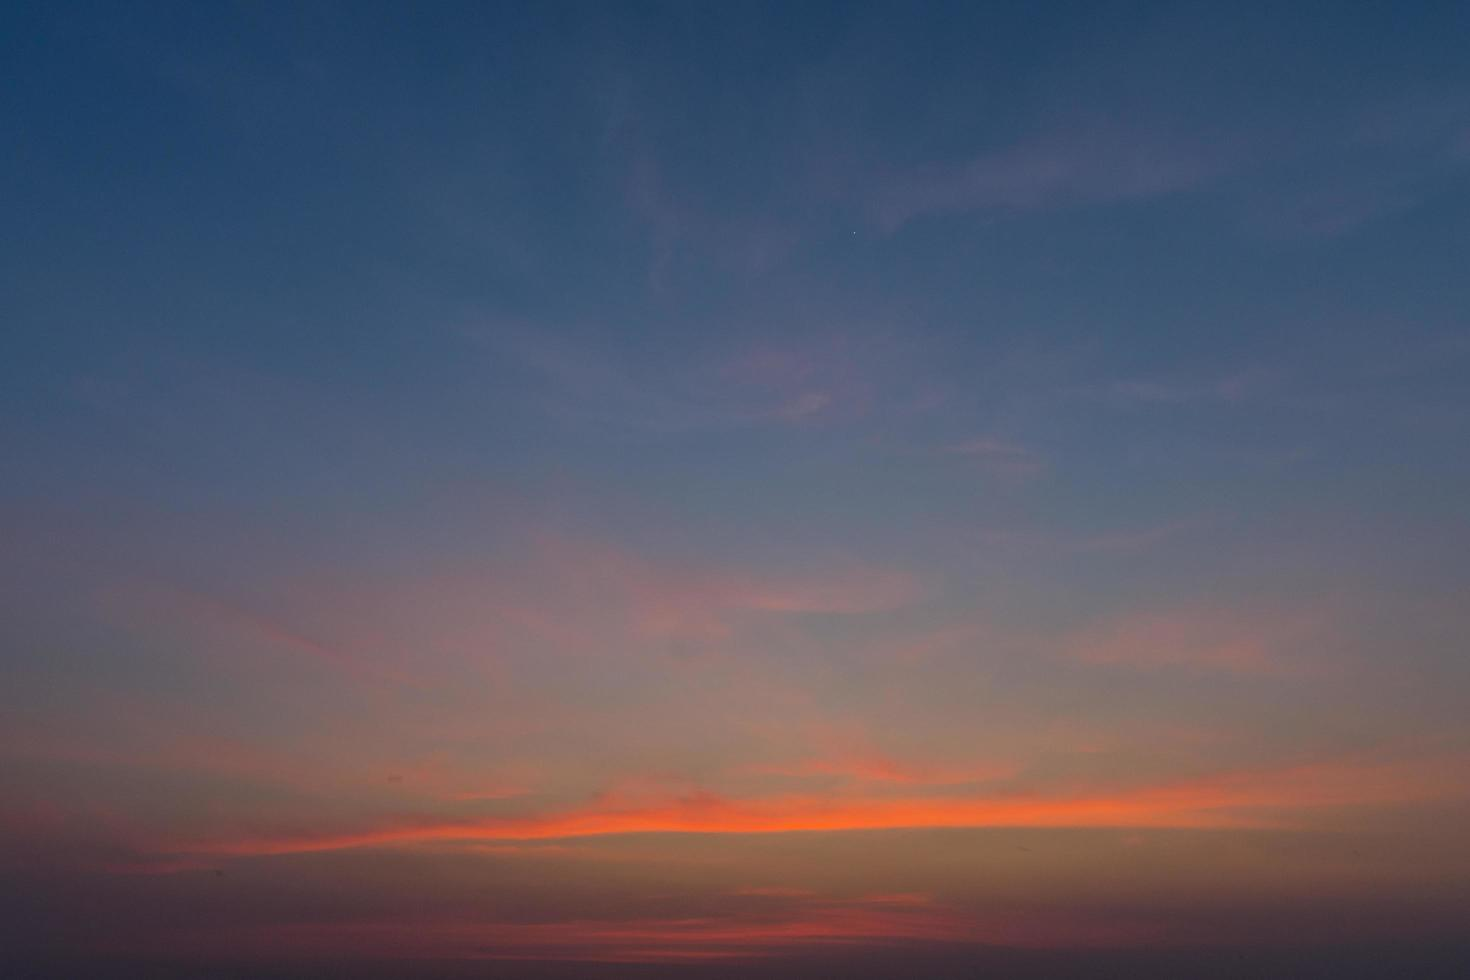 The sky at sunset photo